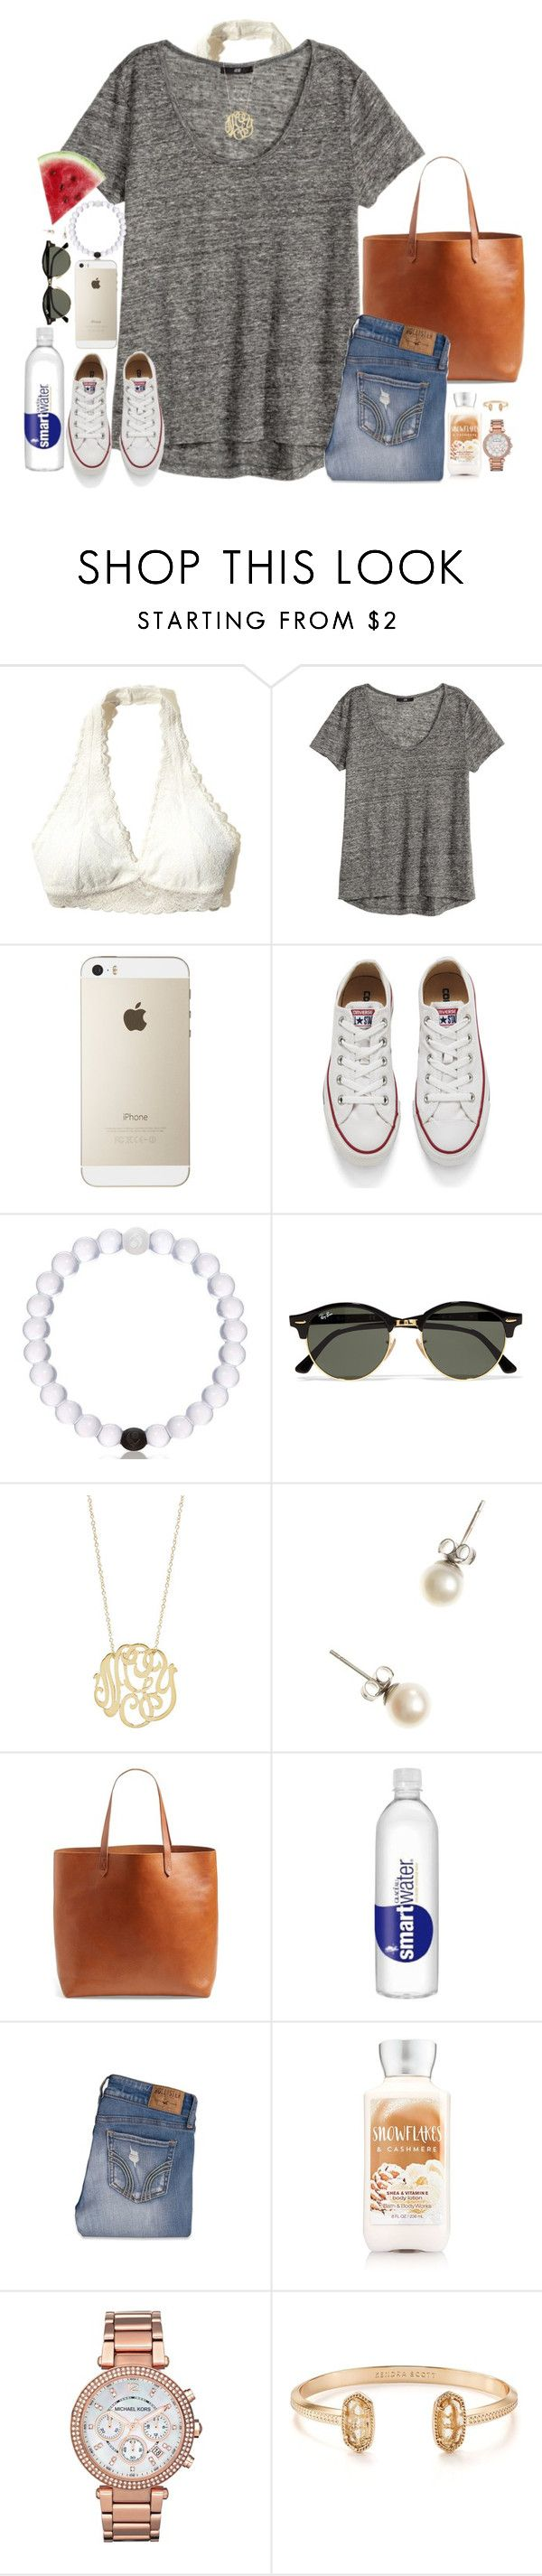 f3342024cde4483d1c84dad78843b227 - Casual spring work outfits with sneakers 15 best outfits